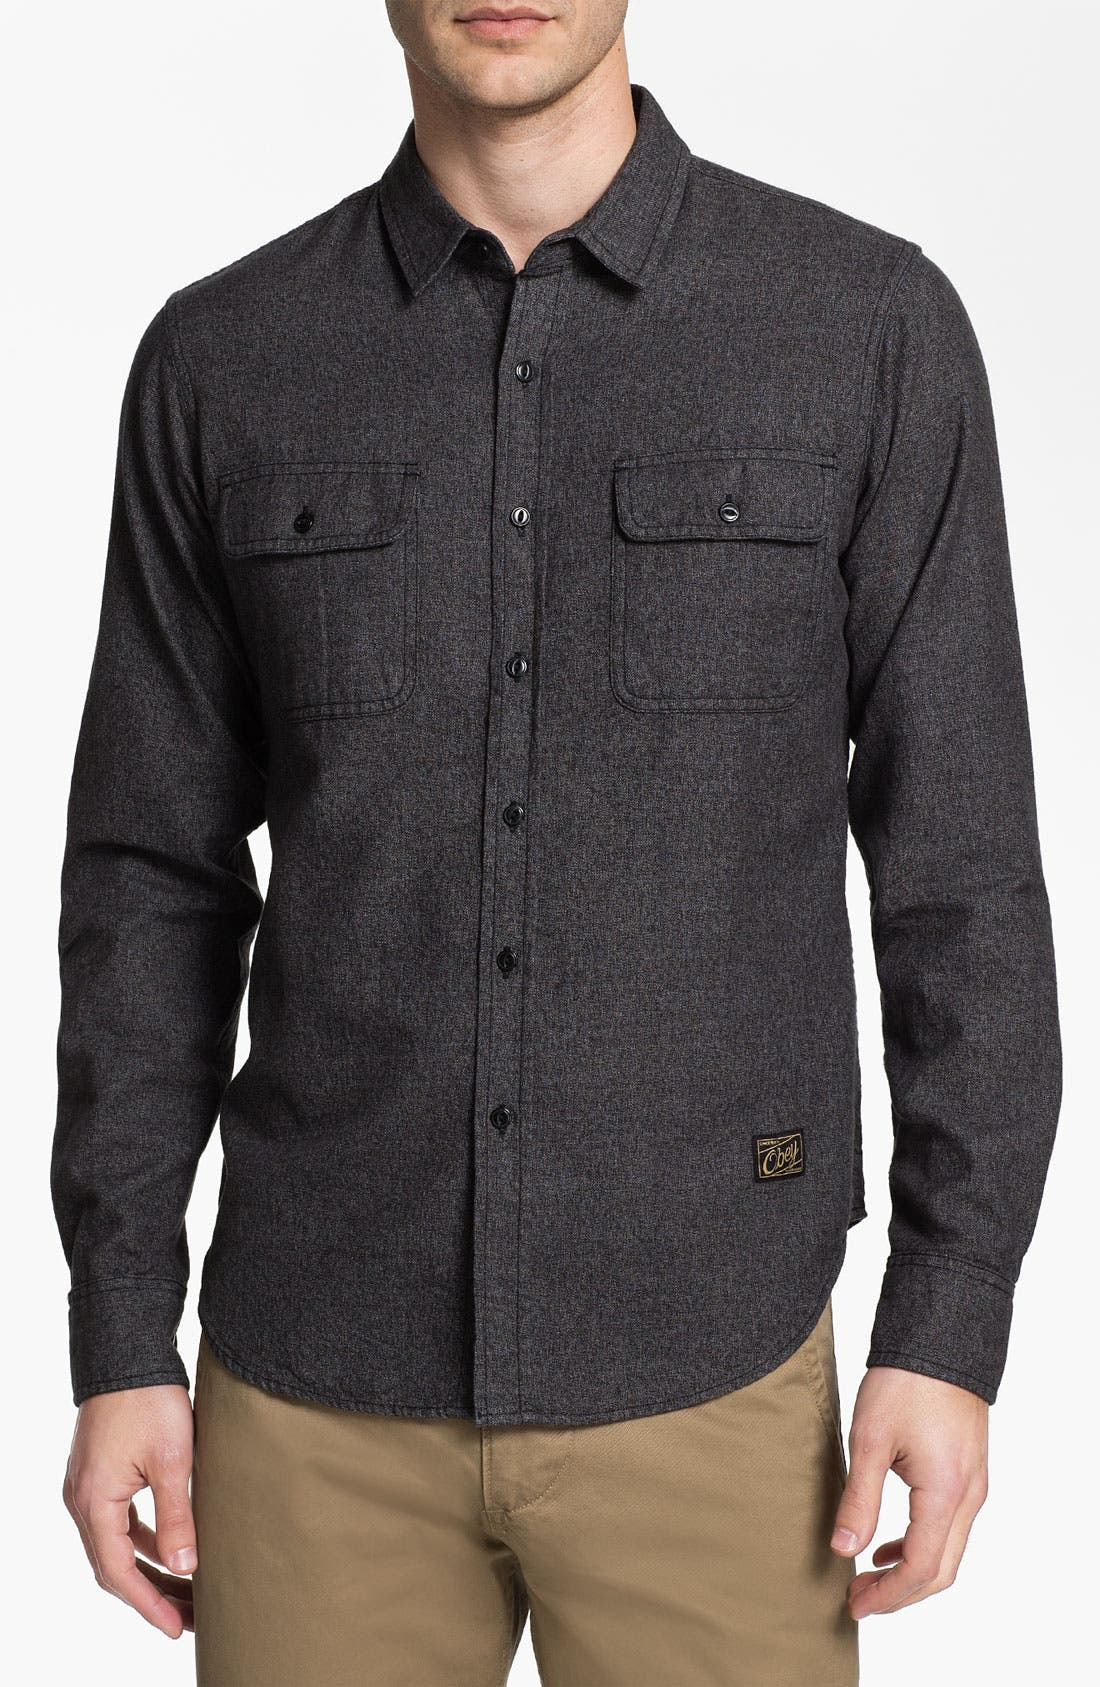 Main Image - Obey 'Cameron' Trim Fit Woven Shirt